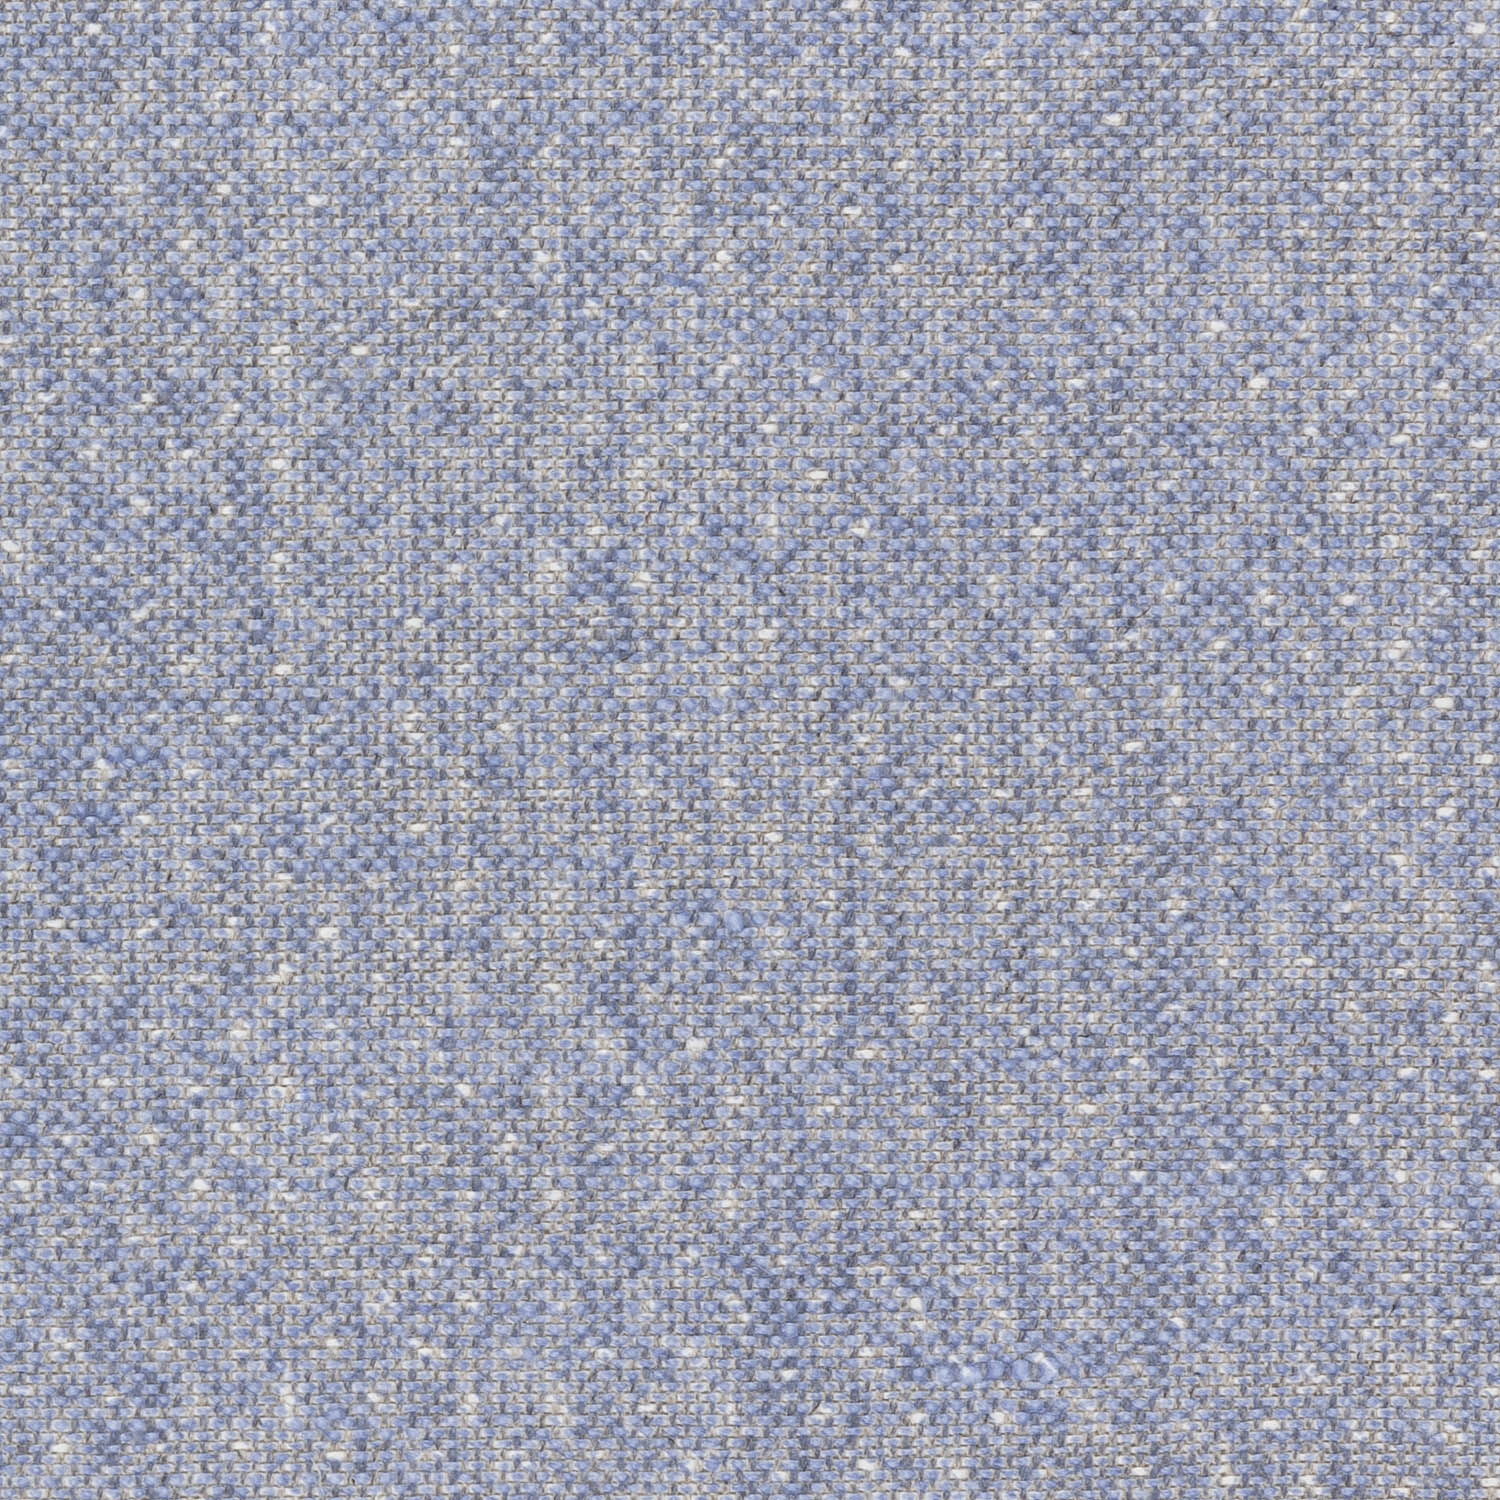 n-075-blue-figured-linen-1